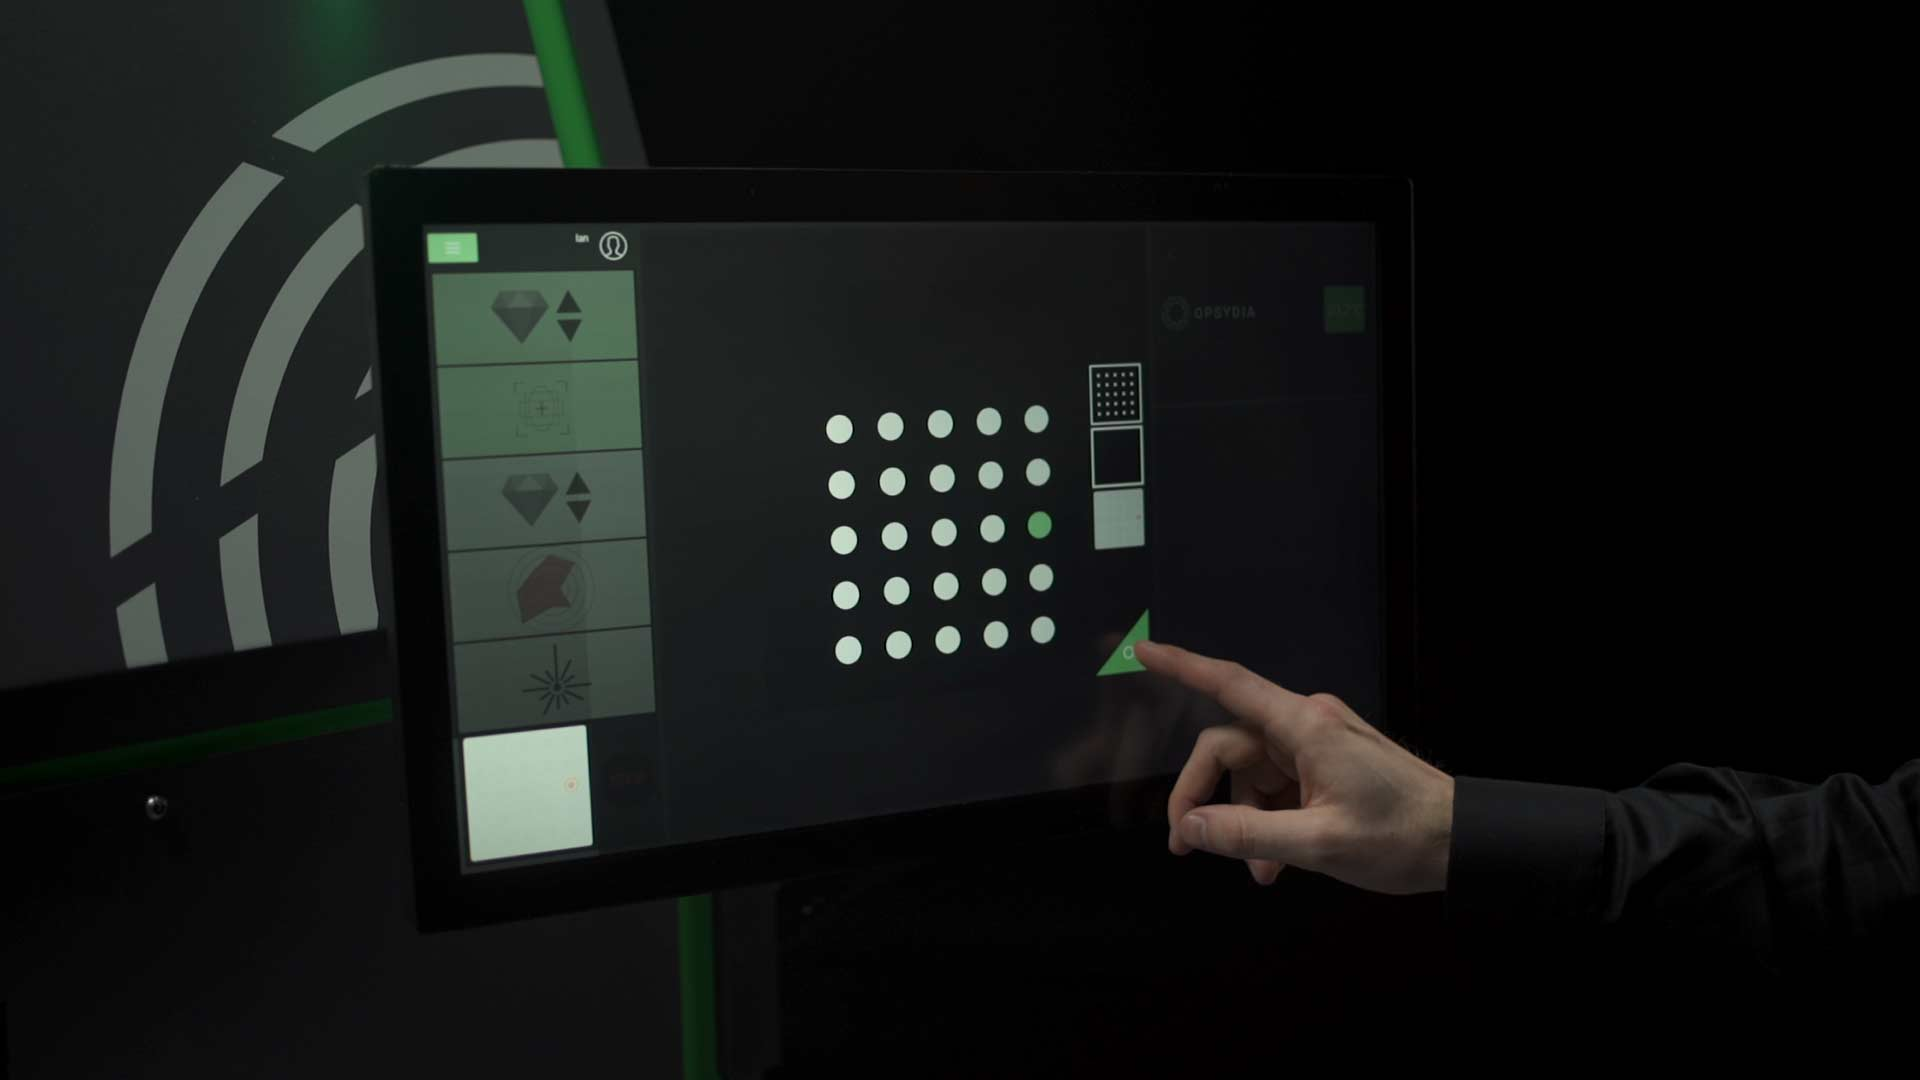 Opsydia System user interface touchscreen computer